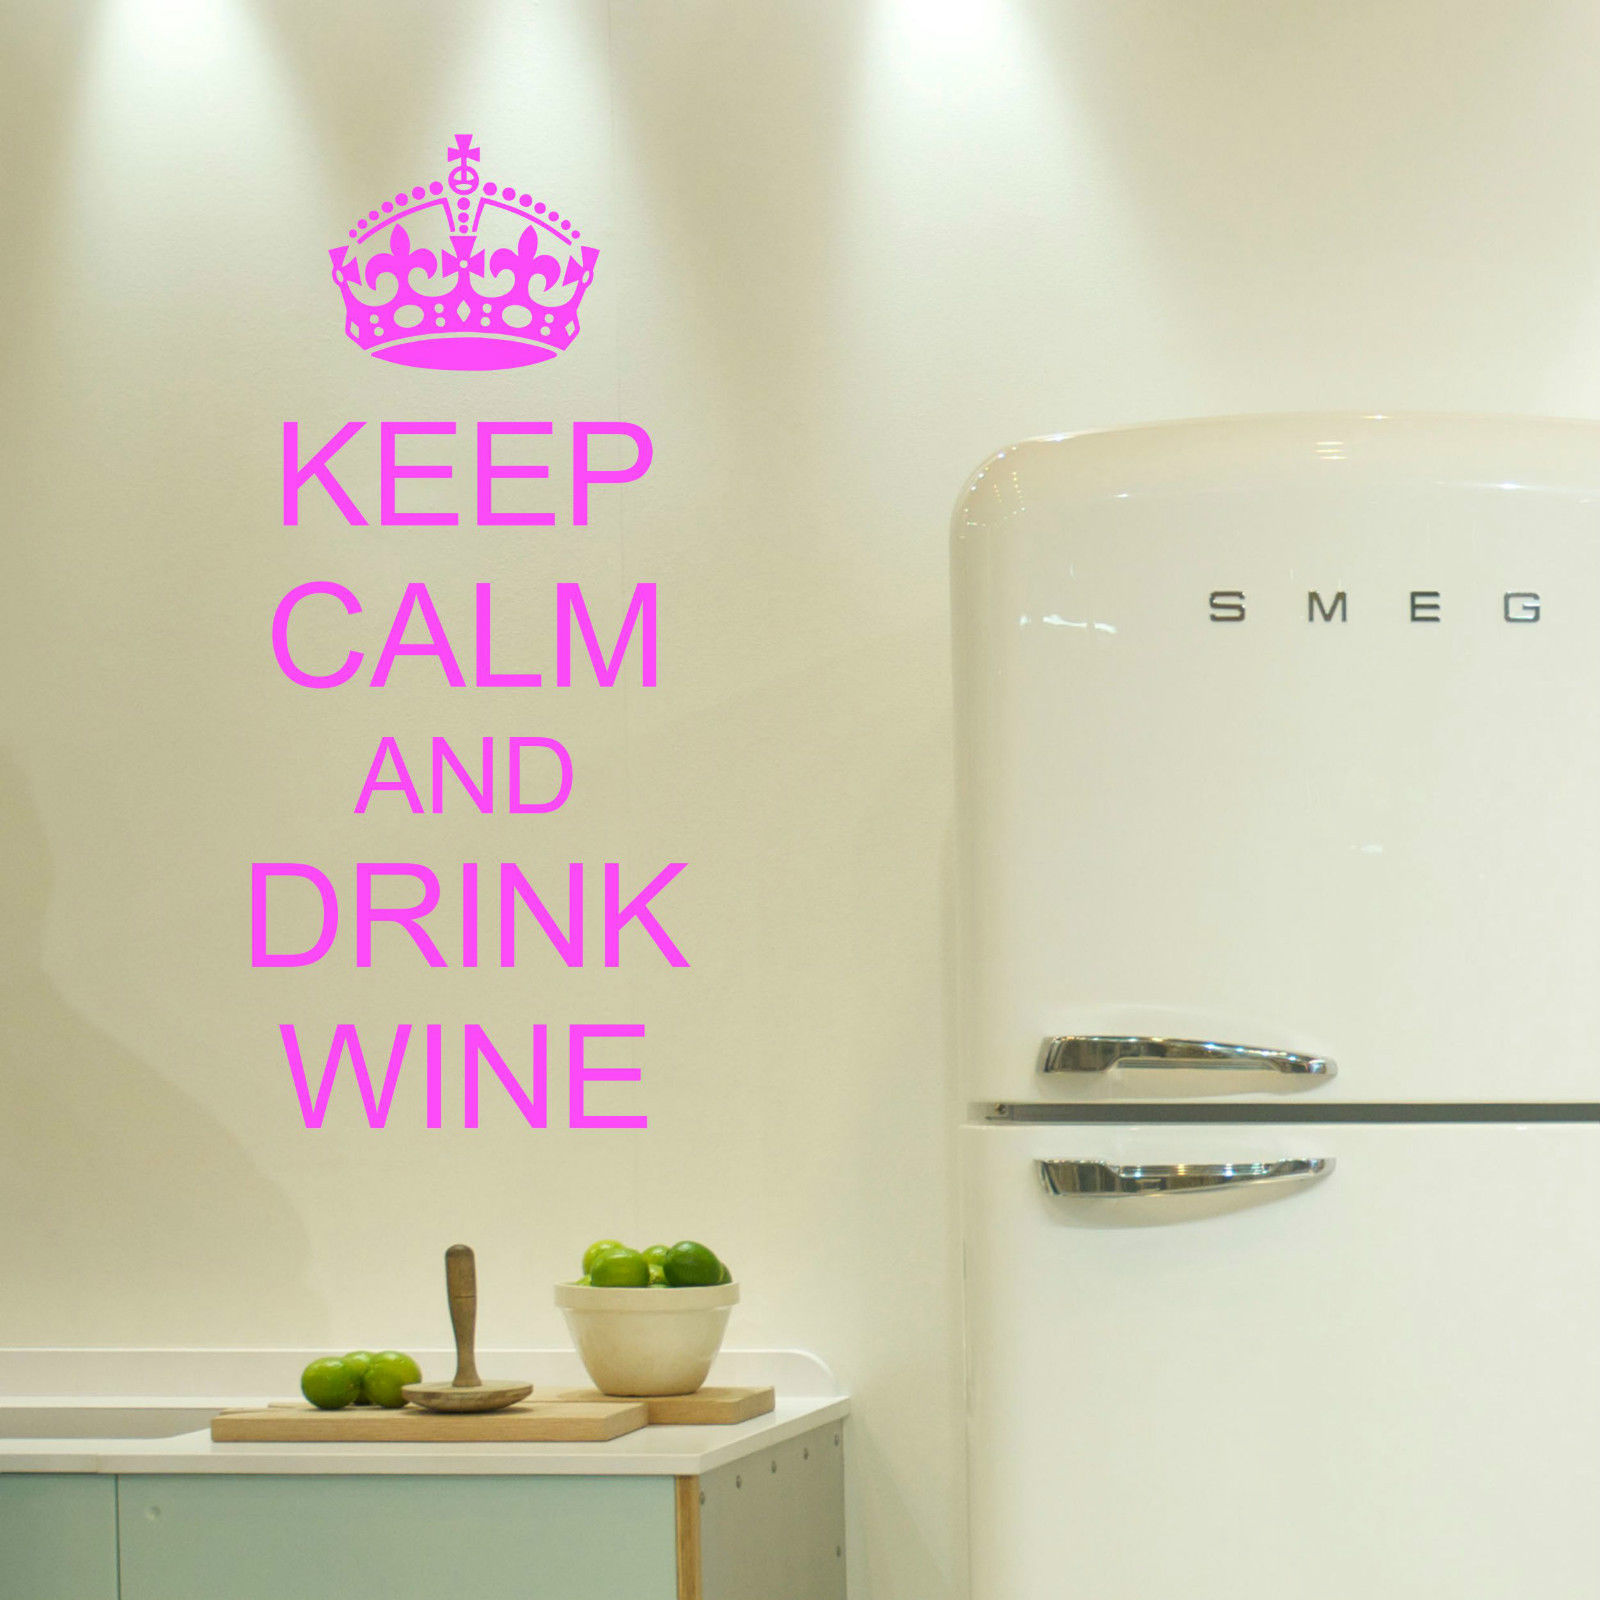 Keep calm and drink wine wall art decal stickers decor kitchen